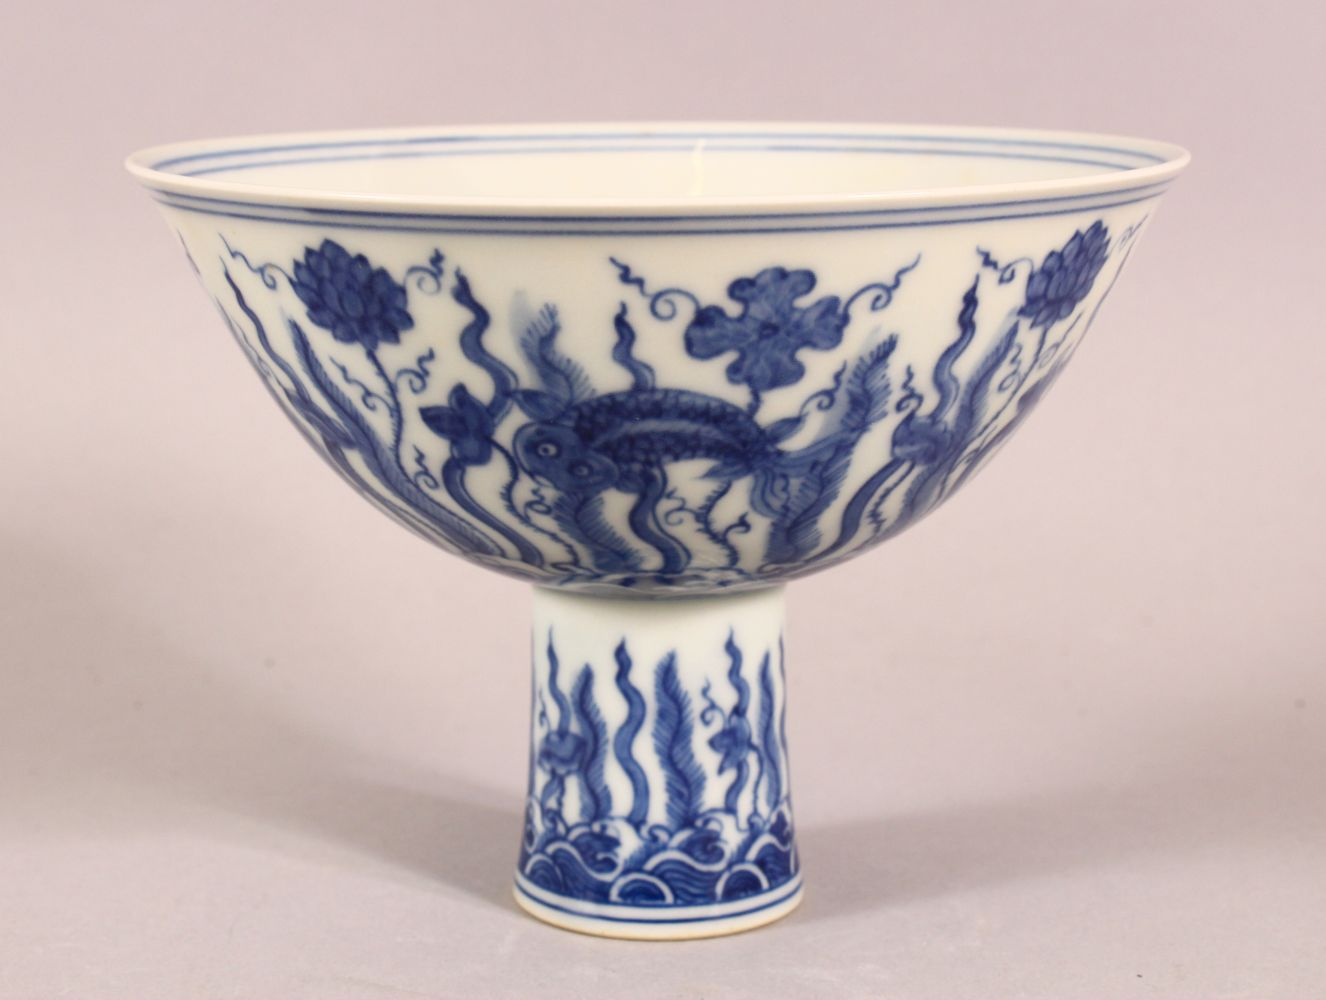 A CHINESE BLUE AND WHITE PORCELAIN STEM CUP, the bowl painted with fish amongst aquatic flora